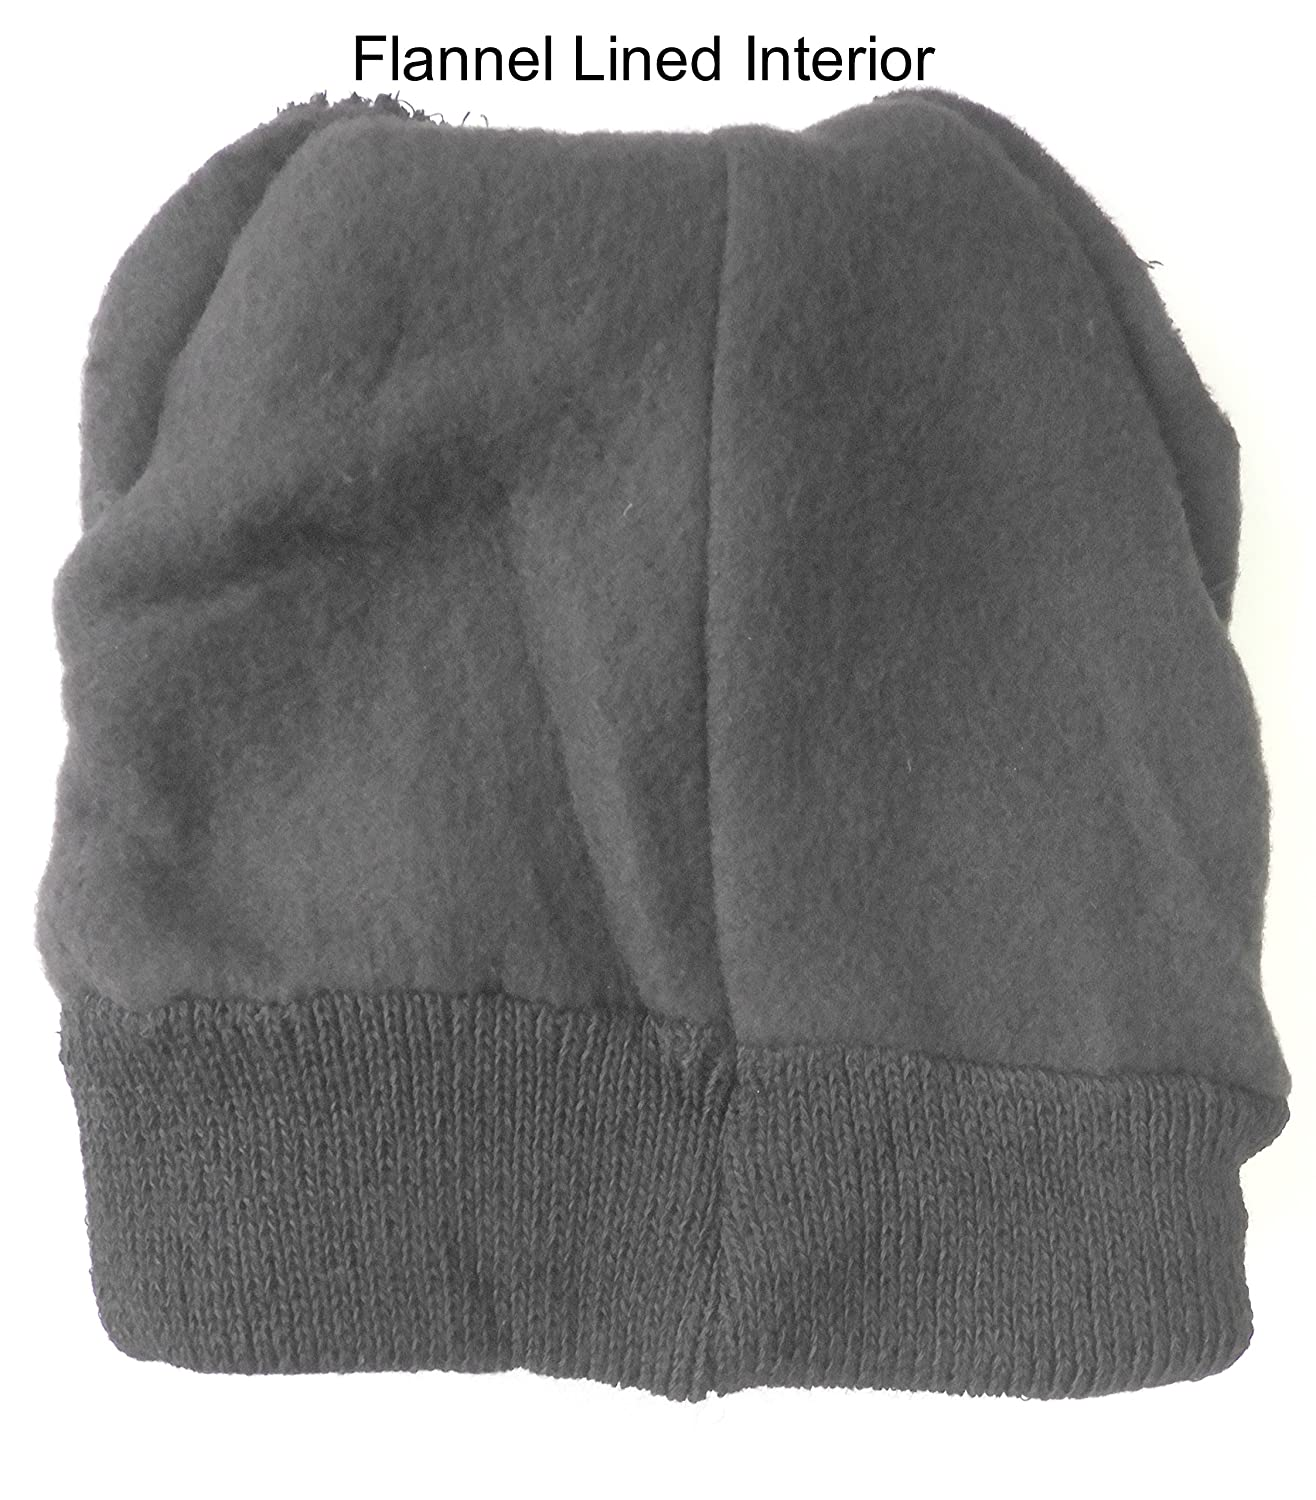 ca7e593b9 DINY Home & Style Unisex Heated Beanie Cap Thermal Cap Insulated ...